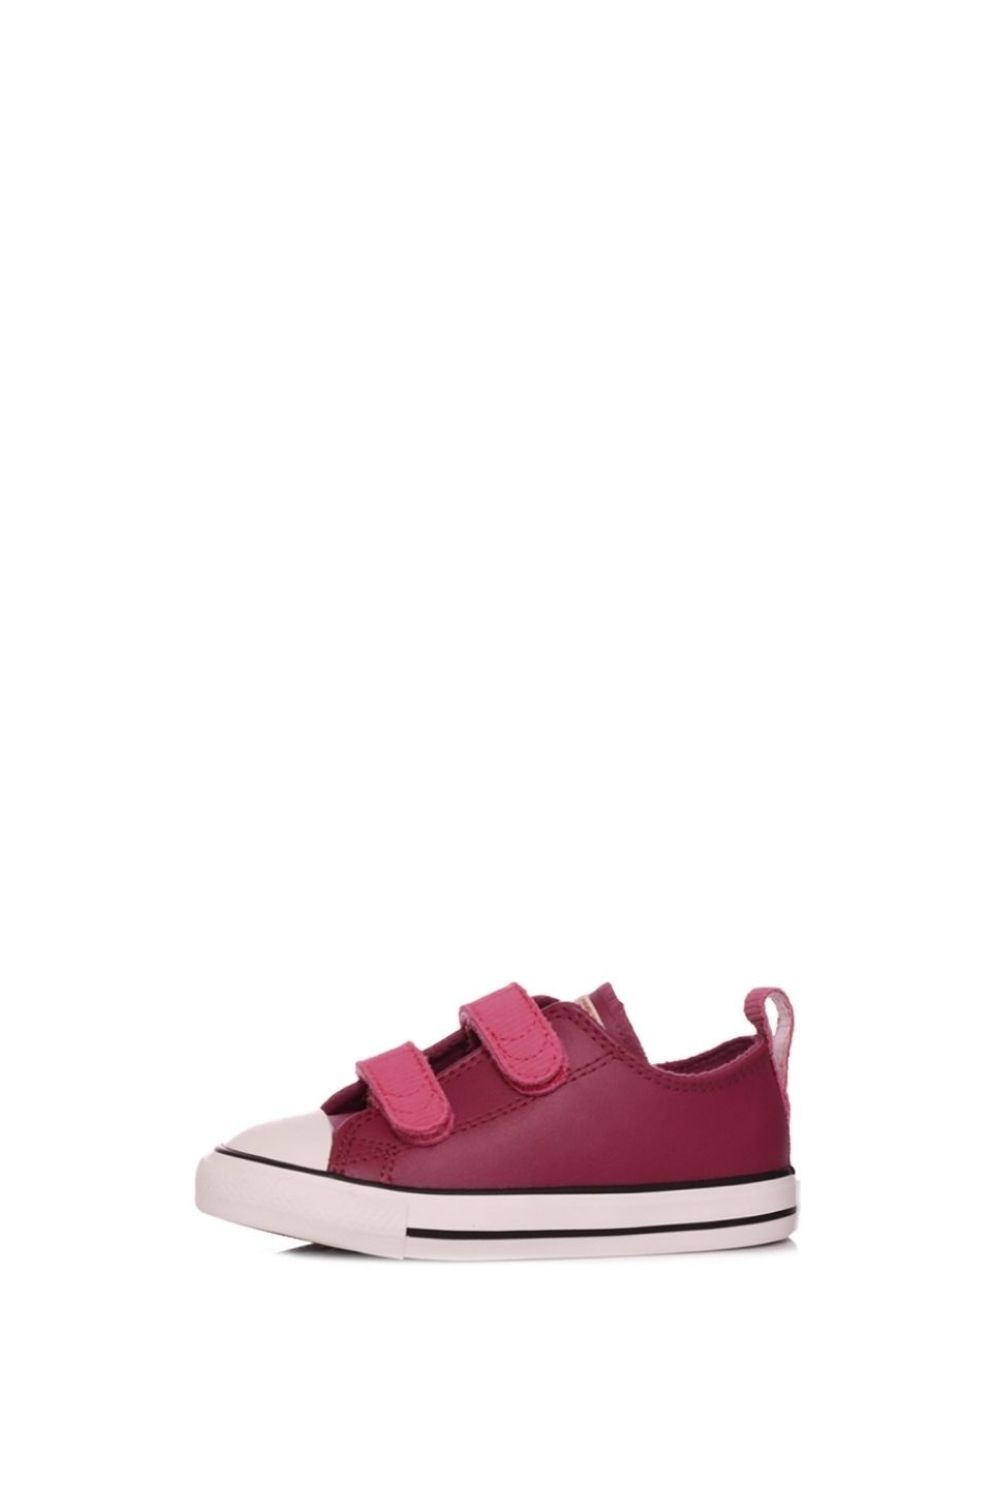 CONVERSE – Βρεφικά sneakers CHUCK TAYLOR ALL STAR 2V μωβ